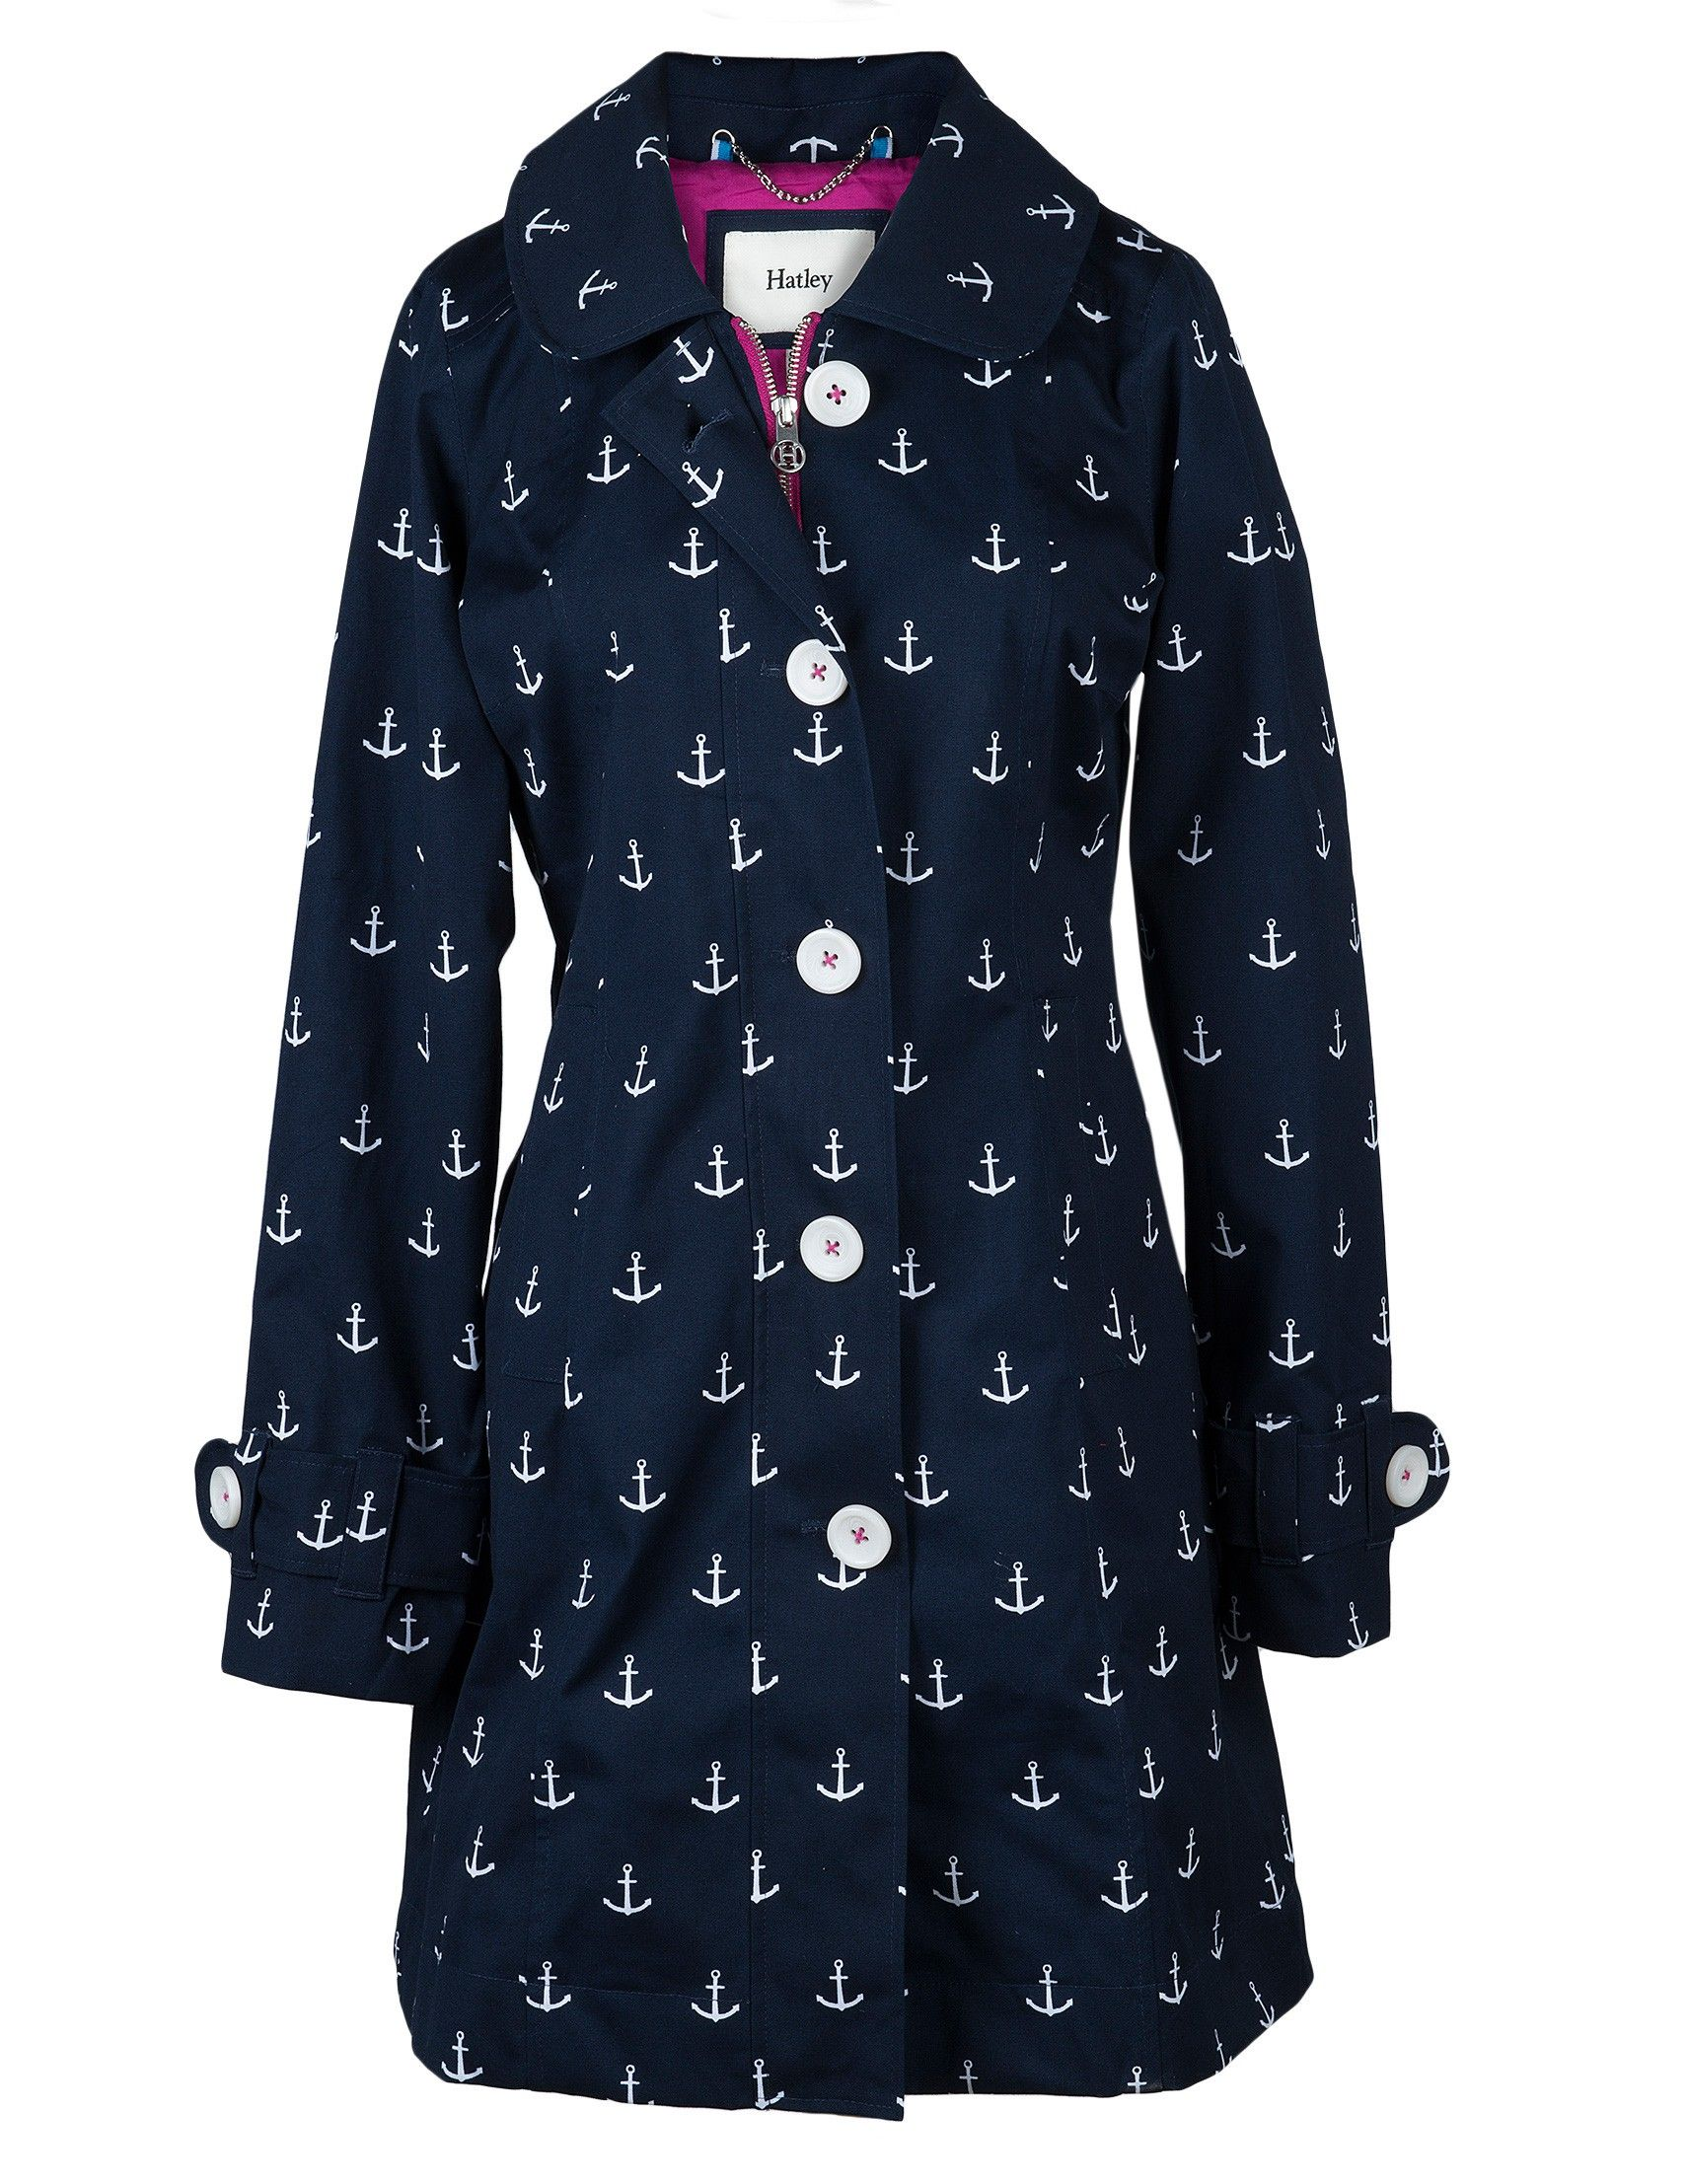 ea664741b8179 Anchor Rain Jacket from Hatley. I would NEVER spend this much on a  raincoat. But it's just so pretty, I could only hope I'd get some crazy  discount haha